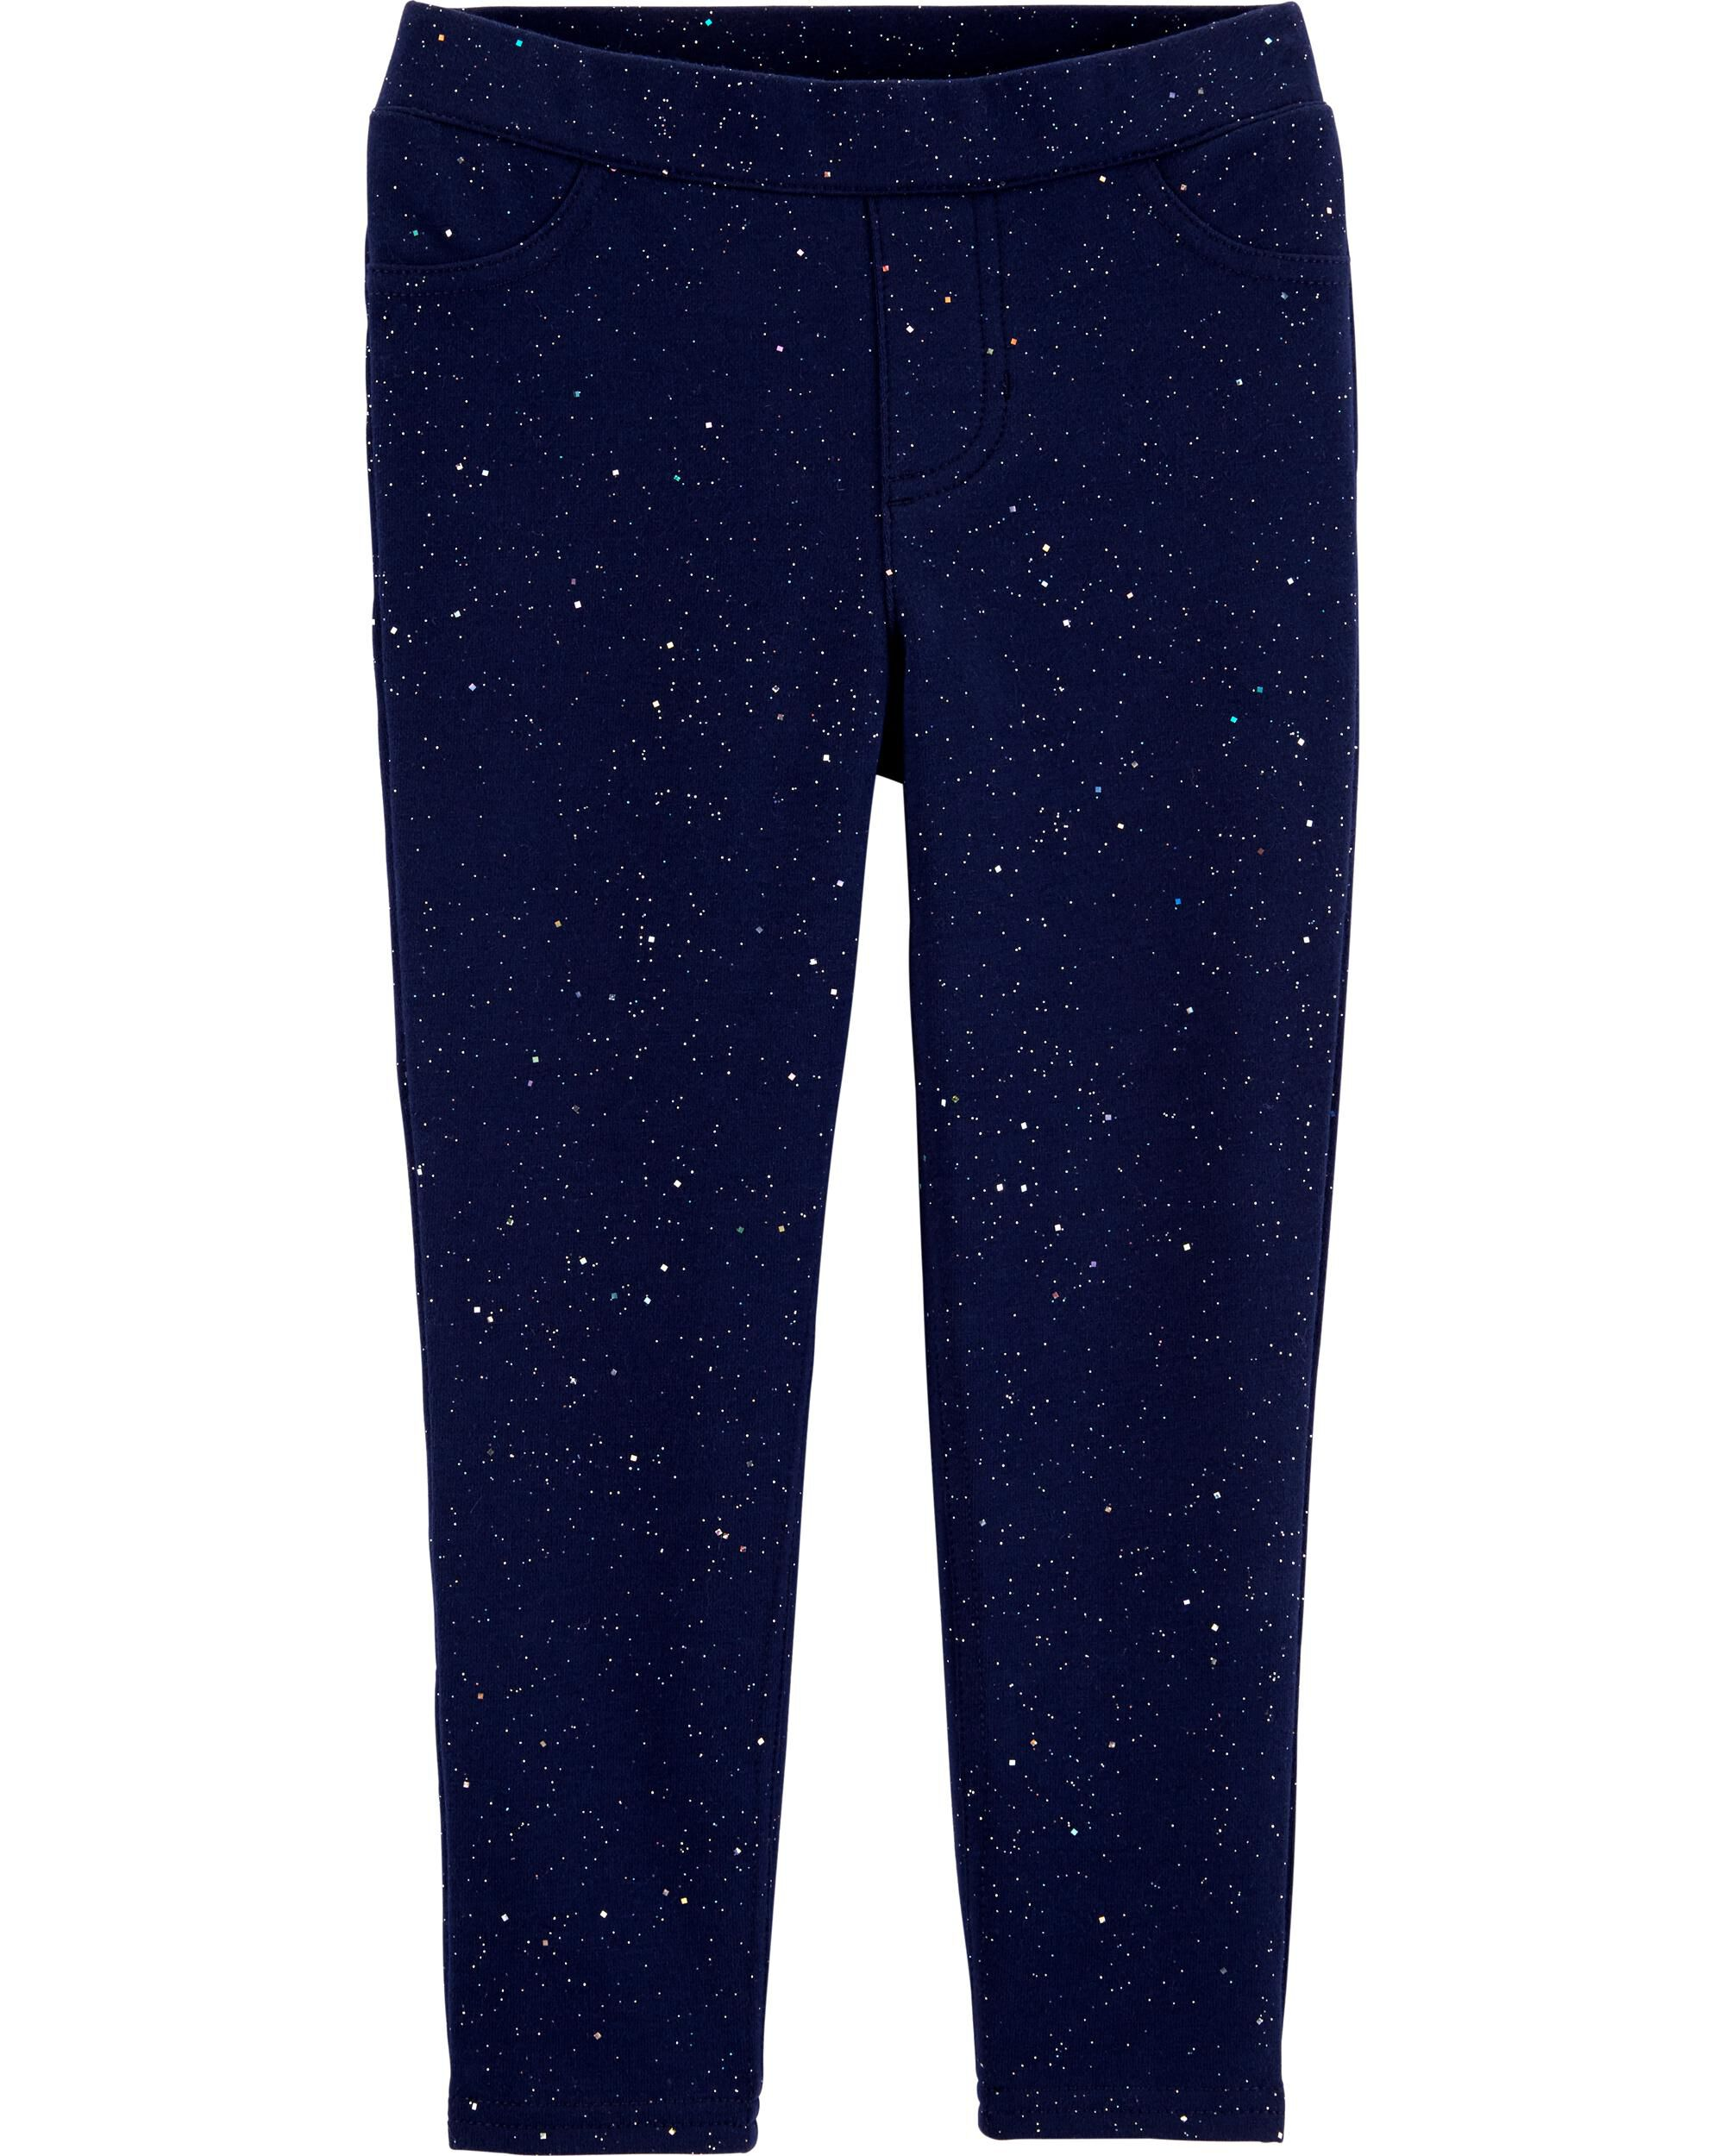 *DOORBUSTER* Sparkly Pull-On French Terry Jeggings